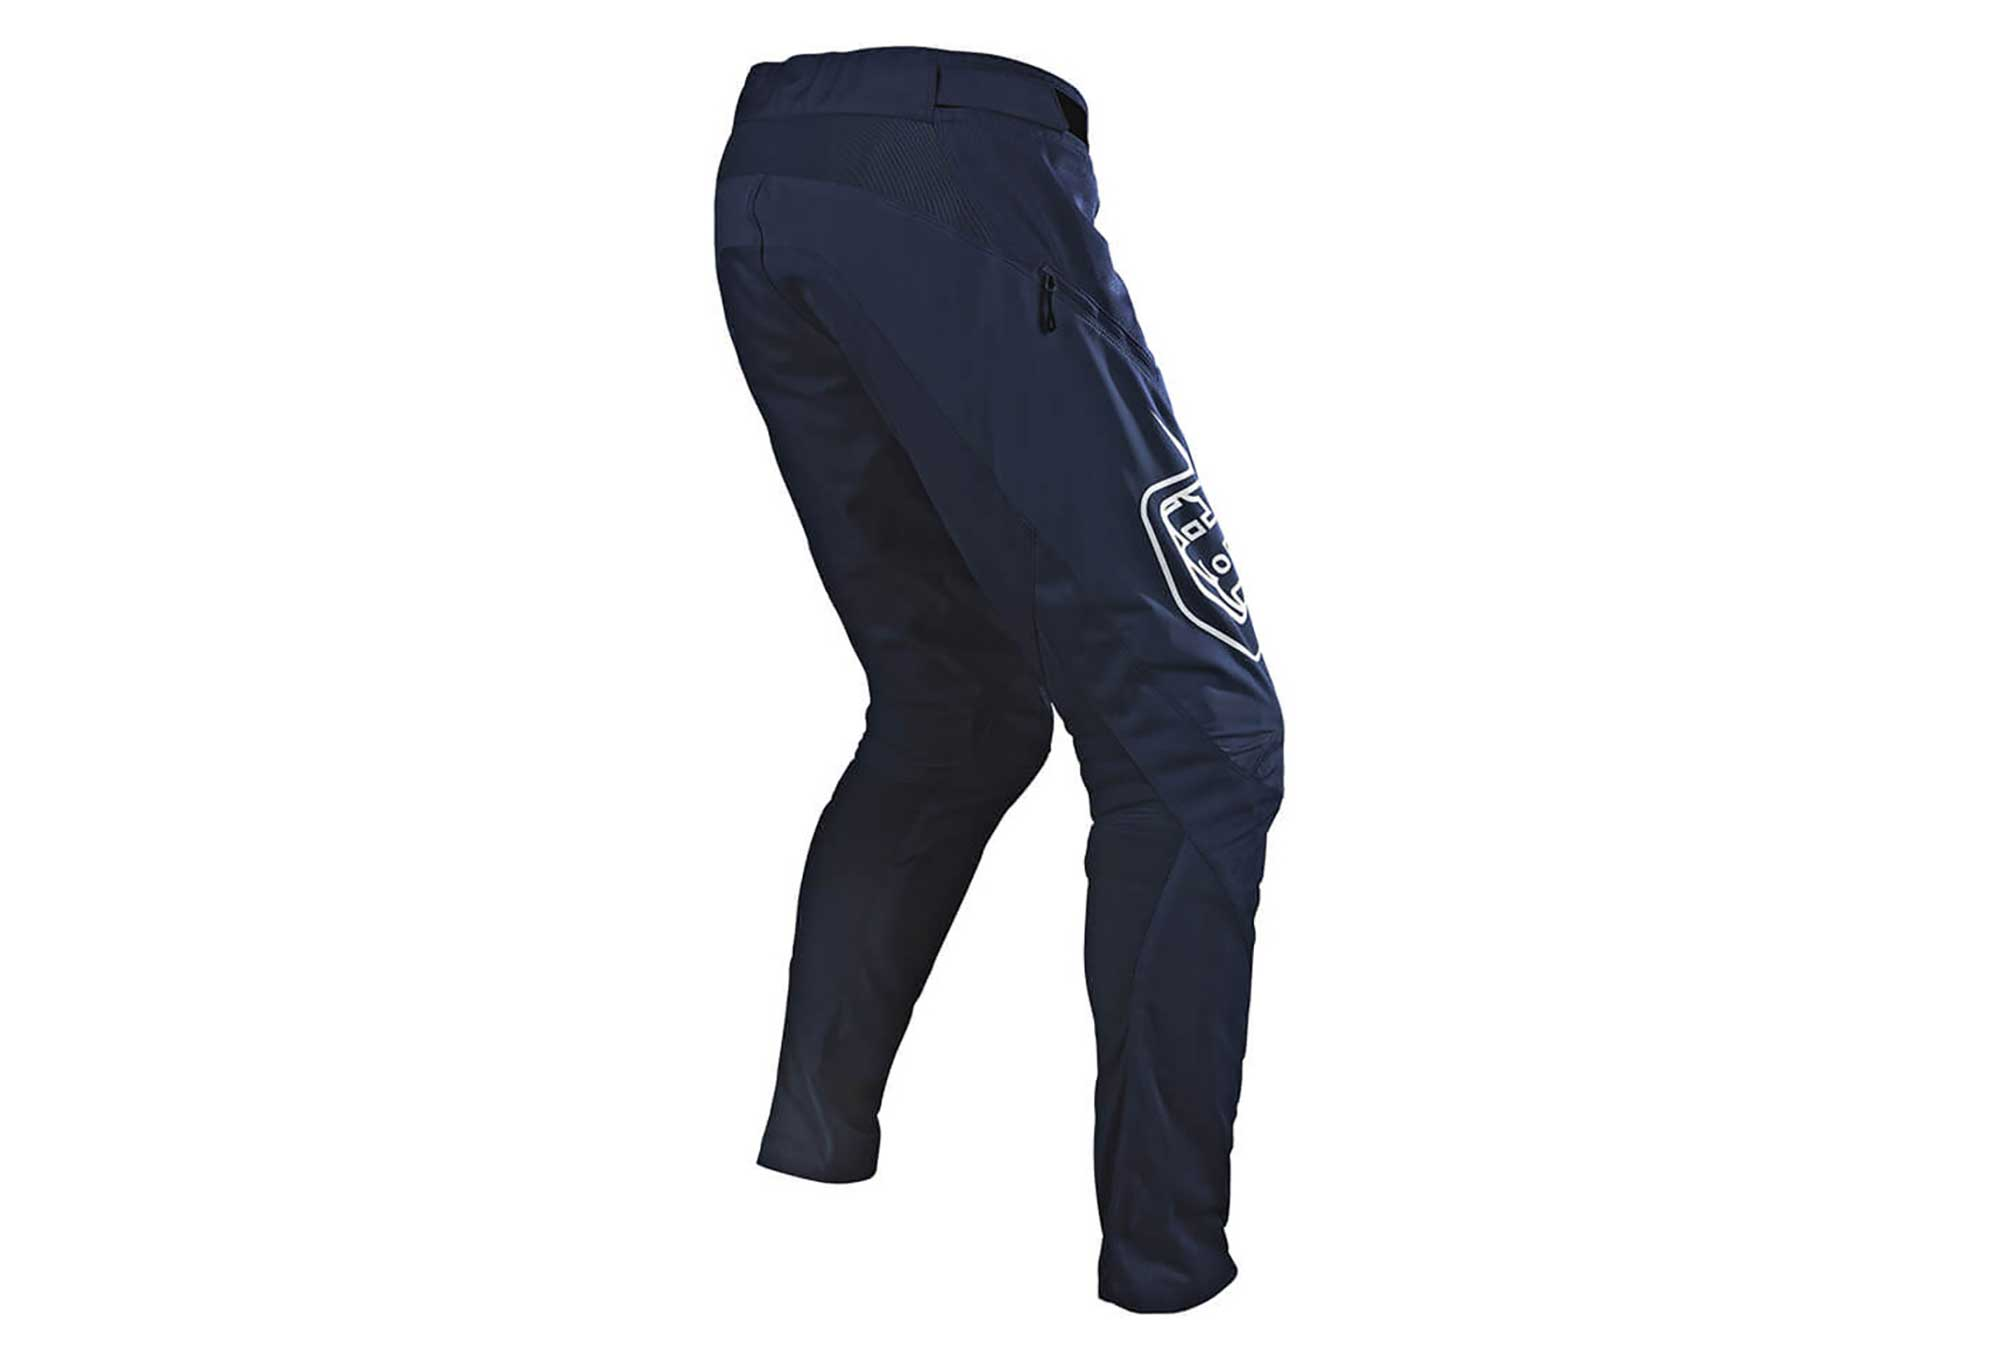 Troy Lee Designs Sprint Solid Youth Off-Road BMX Cycling Shorts